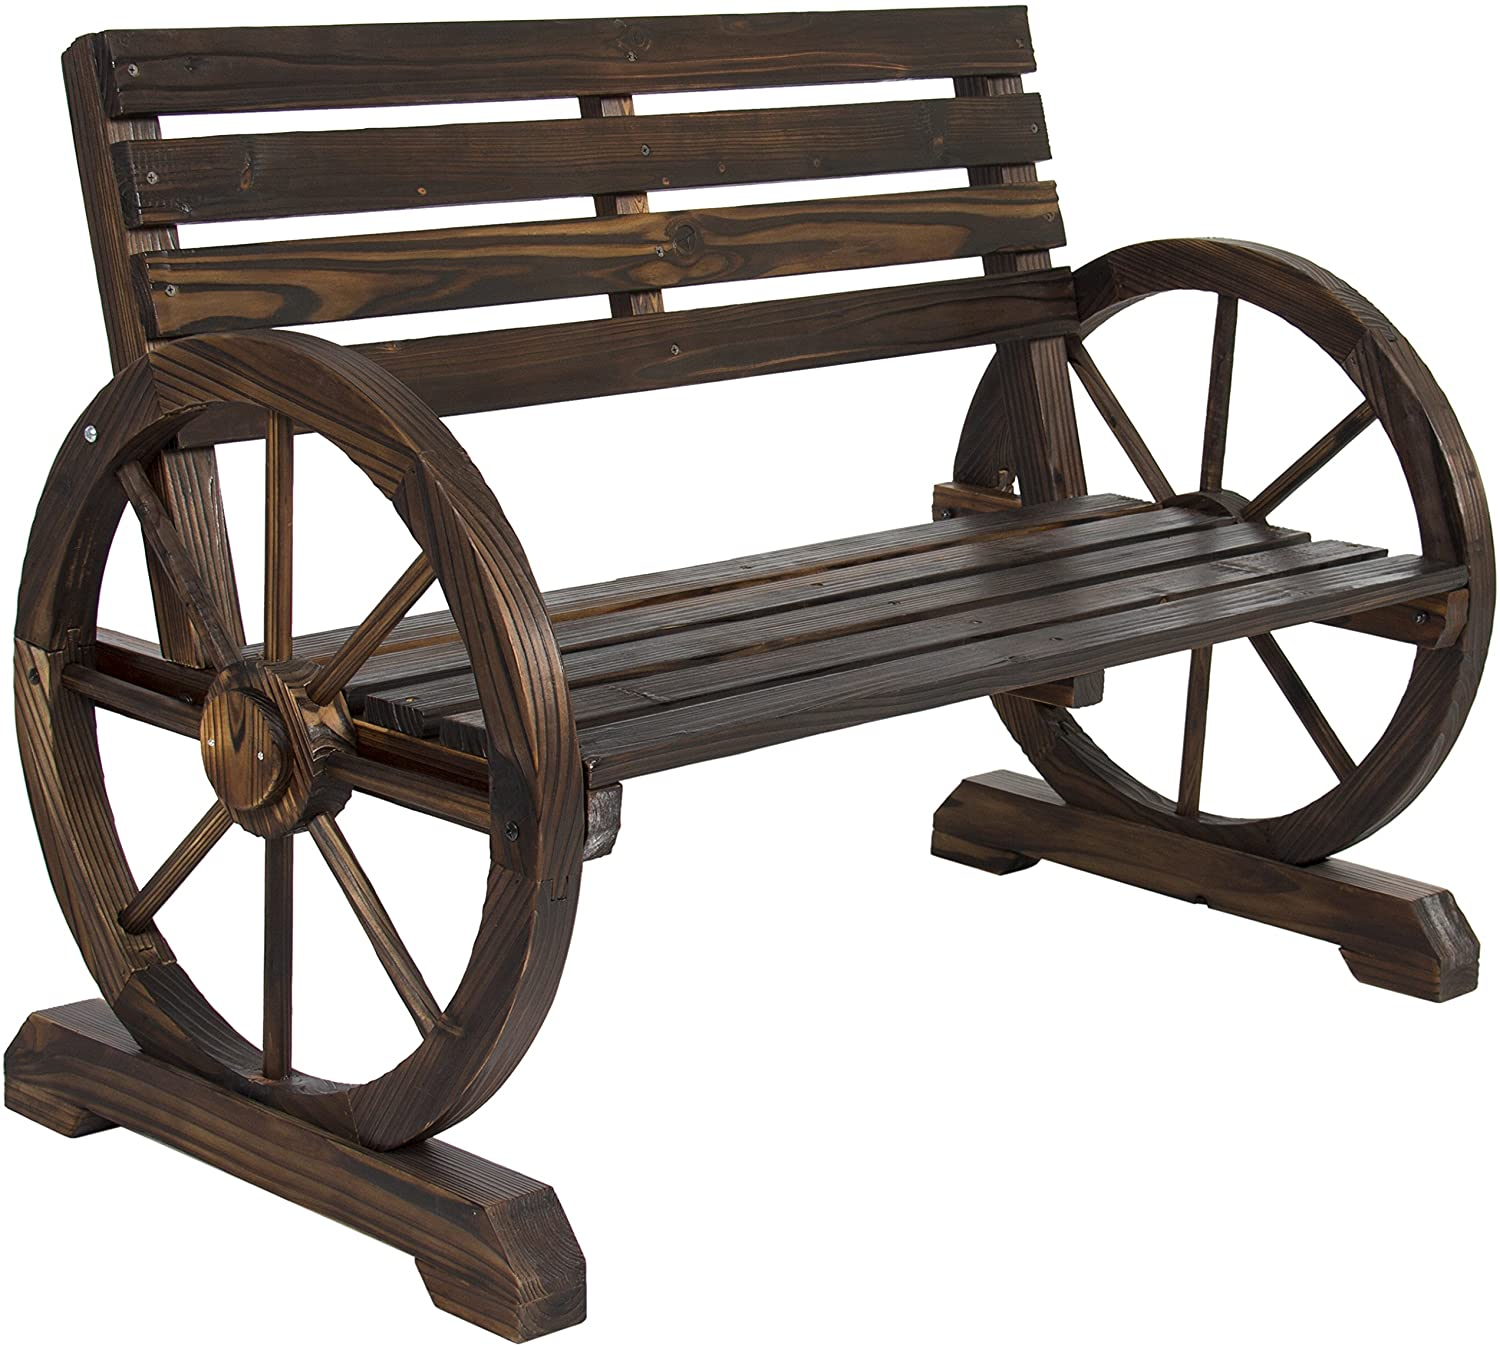 Review of Best Choice Products Wooden Rustic Wagon Wheel Bench for Patio, Garden, Outdoor